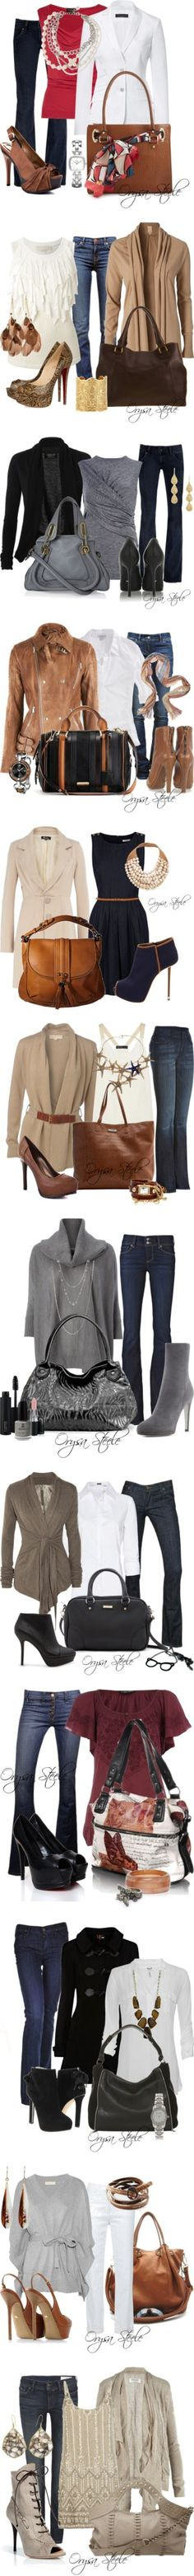 """Casual Friday"" by orysa on Polyvore"